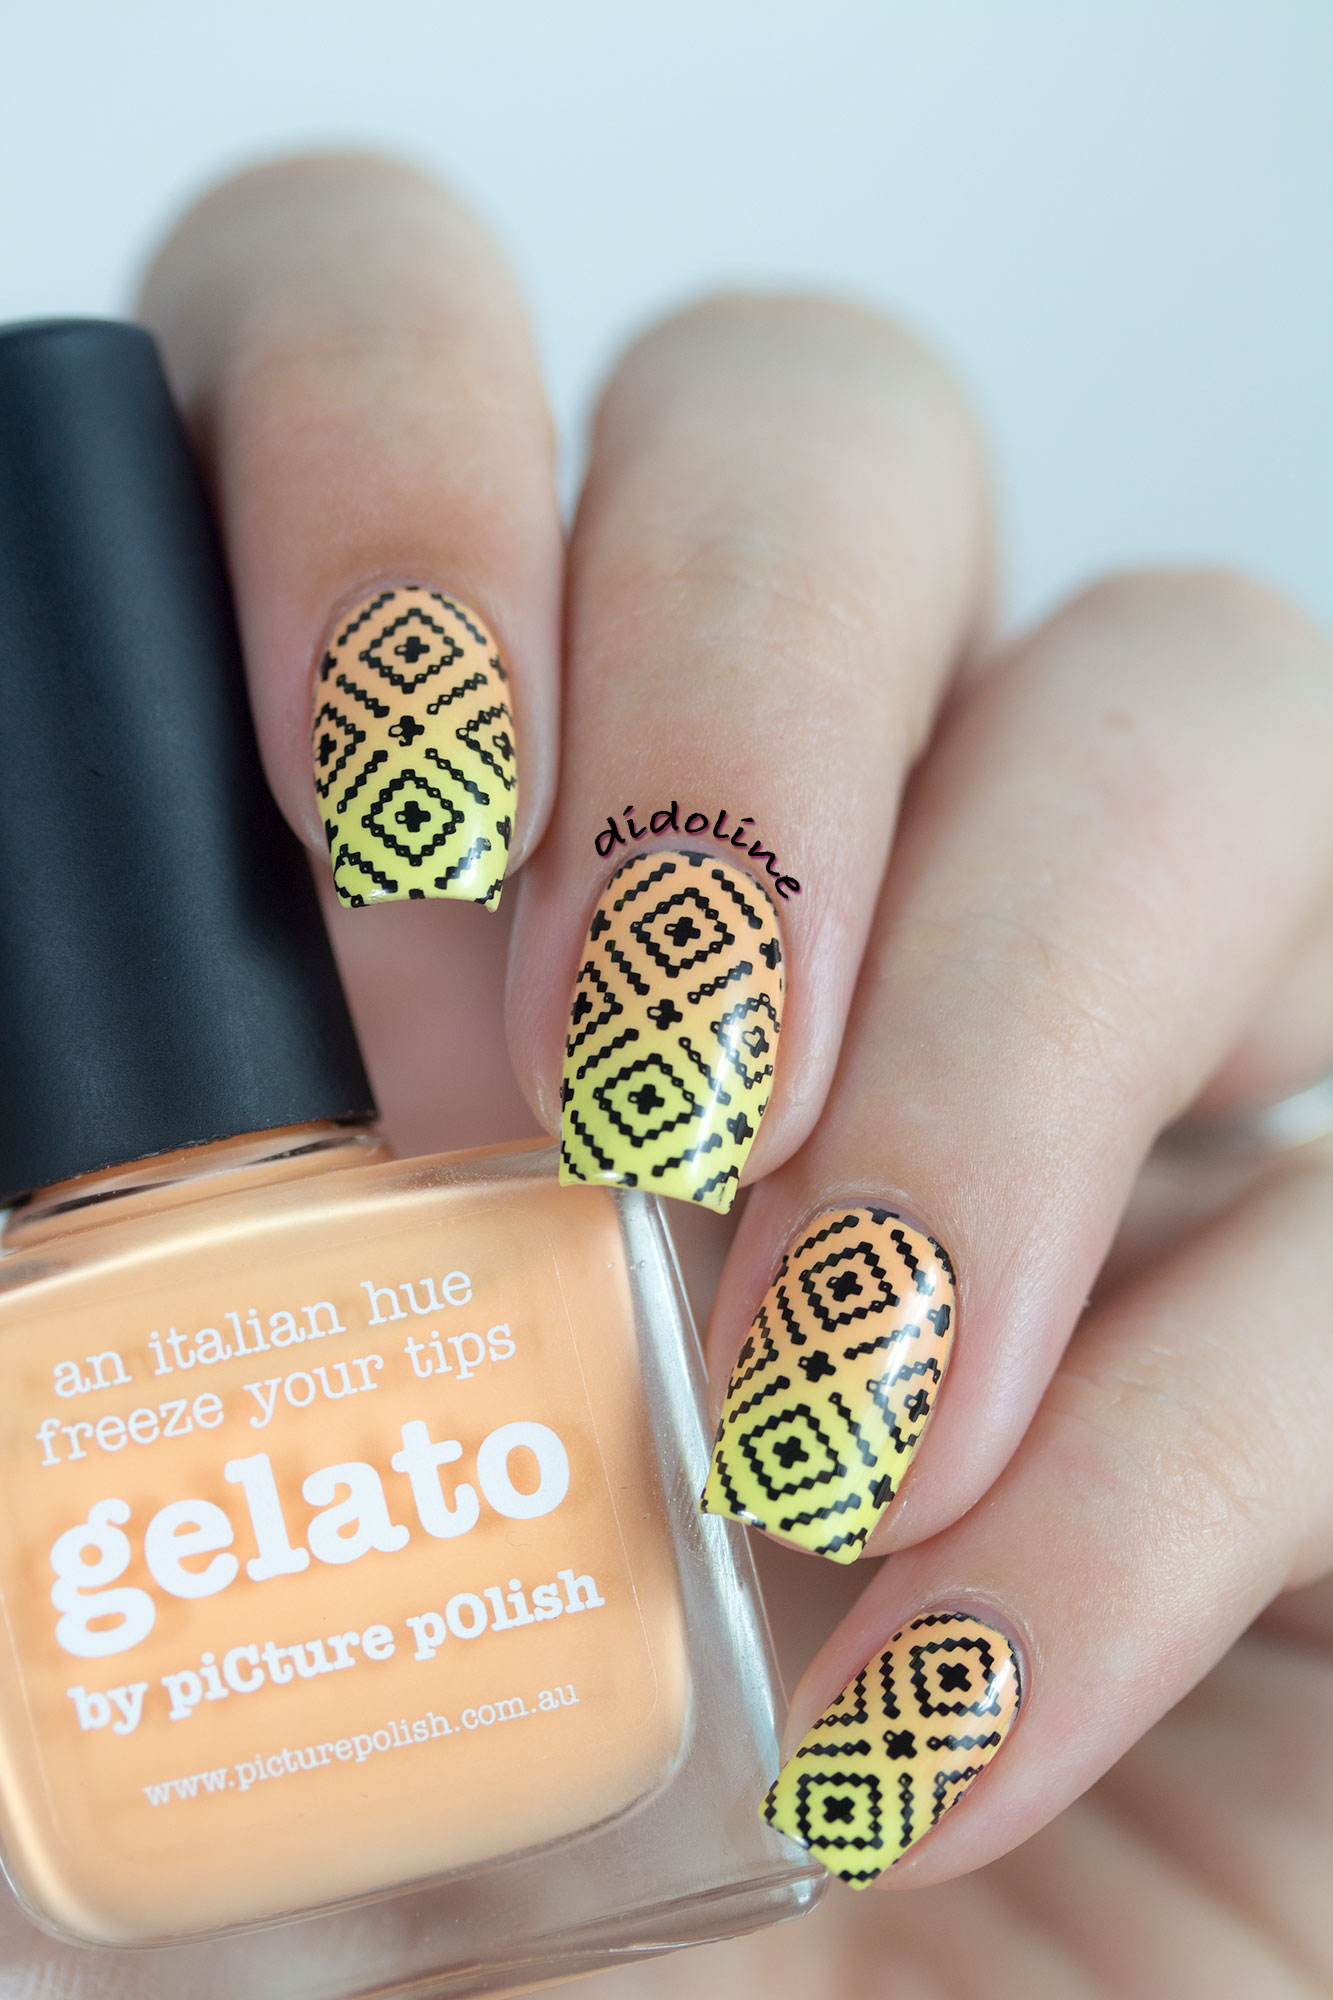 piCture pOlish - Sorbet, Gelato and Stamping !